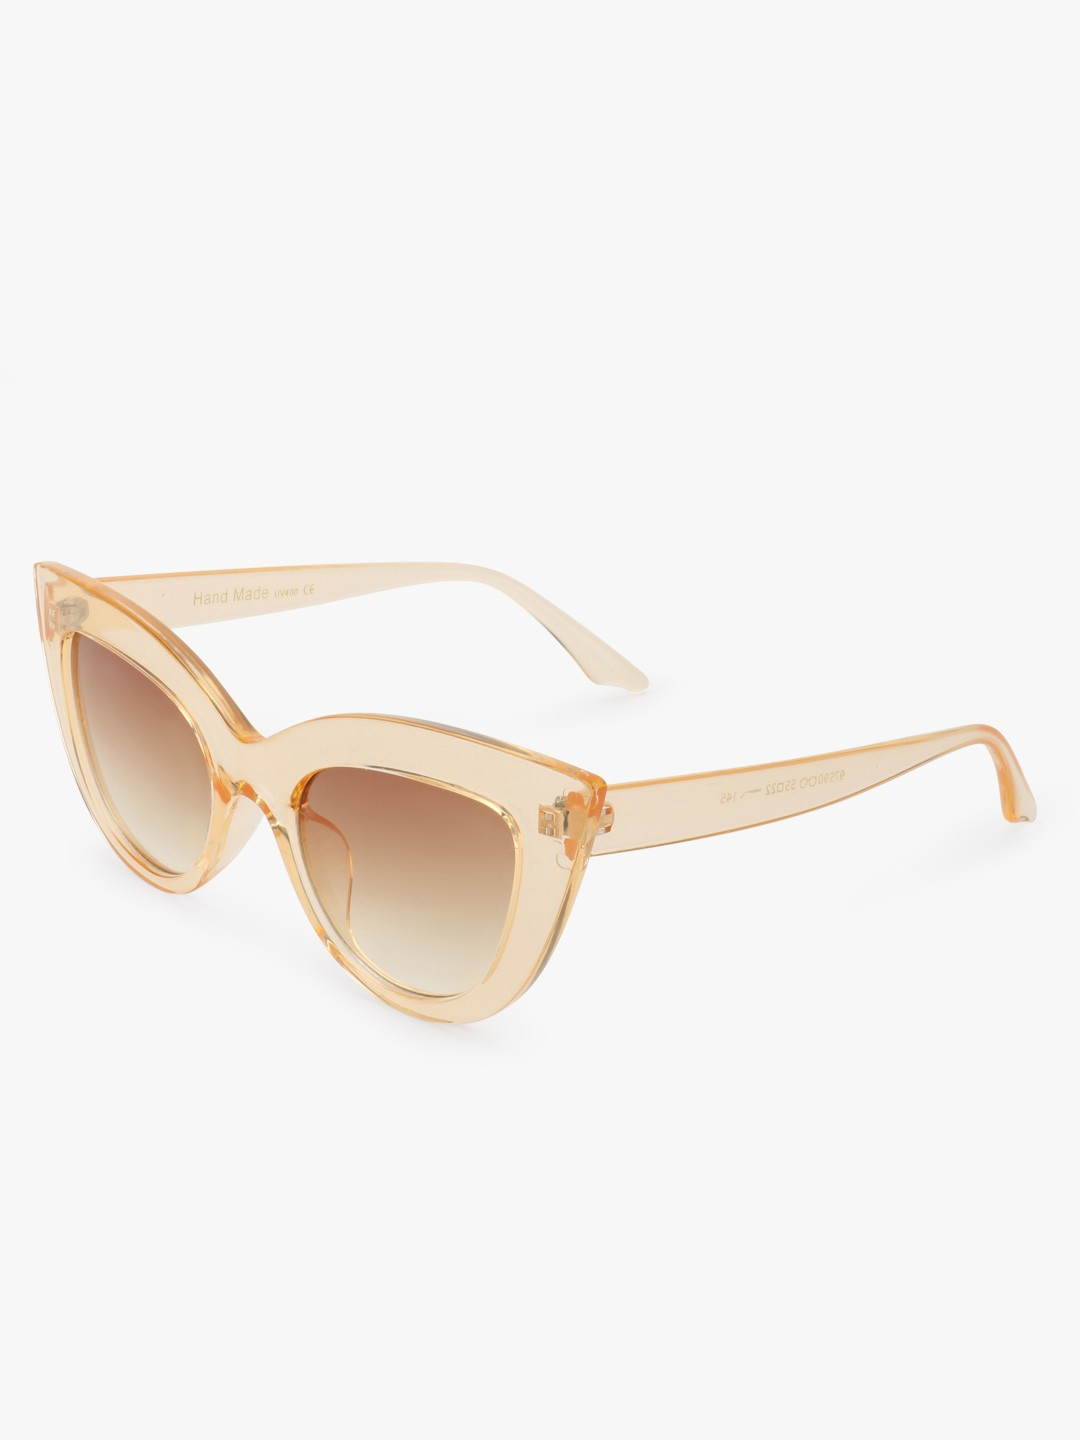 Style Fiesta Brown Transparent Frame Cateye Sunglasses 1